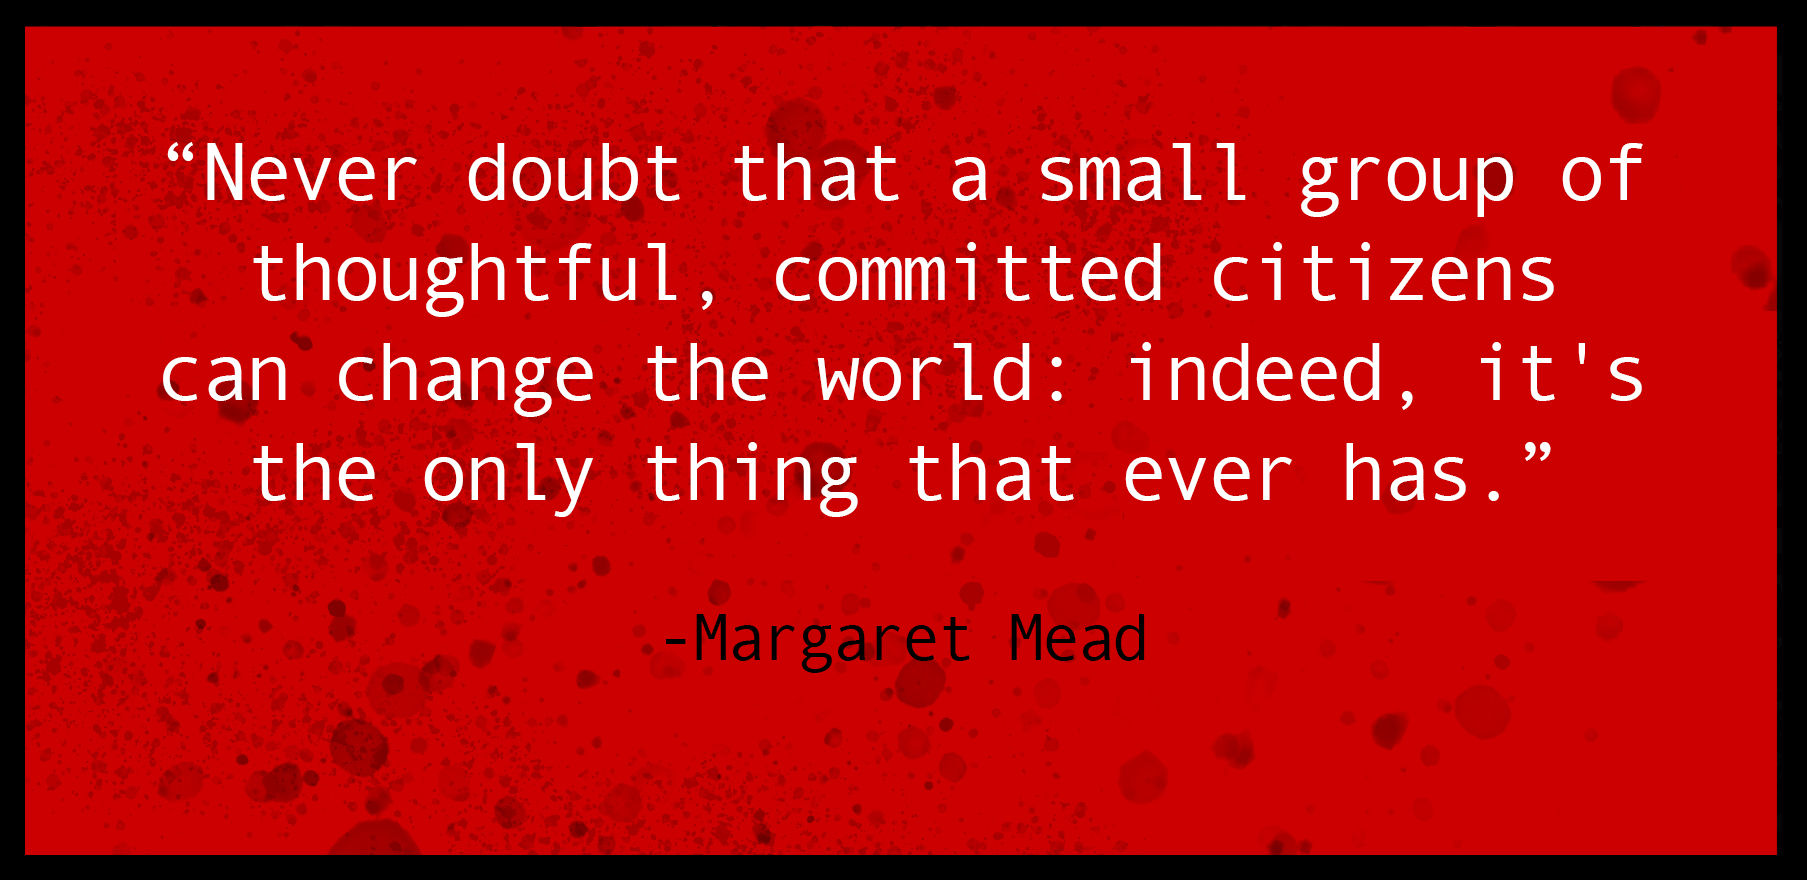 Quote by Margaret Mead for YAAA